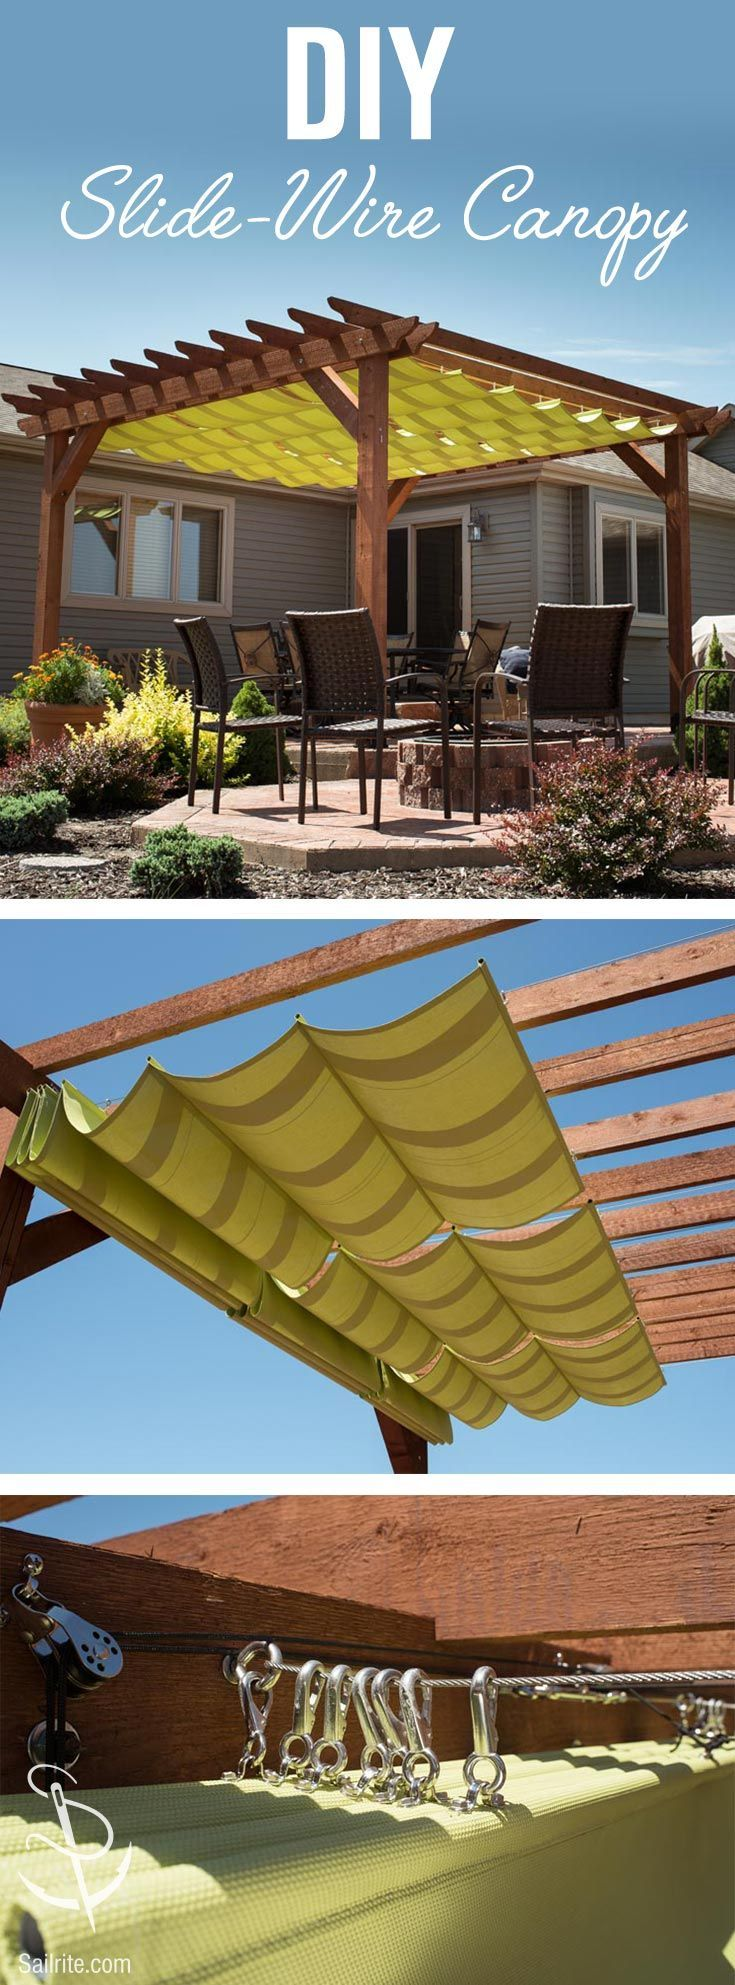 Gazebo curtains outdoor - Add Extra Shade And Style To Your Outdoor Living Space With A Wire Hung Canopy System These Billowing Shades Easily Slide On The Cables They Hang From So